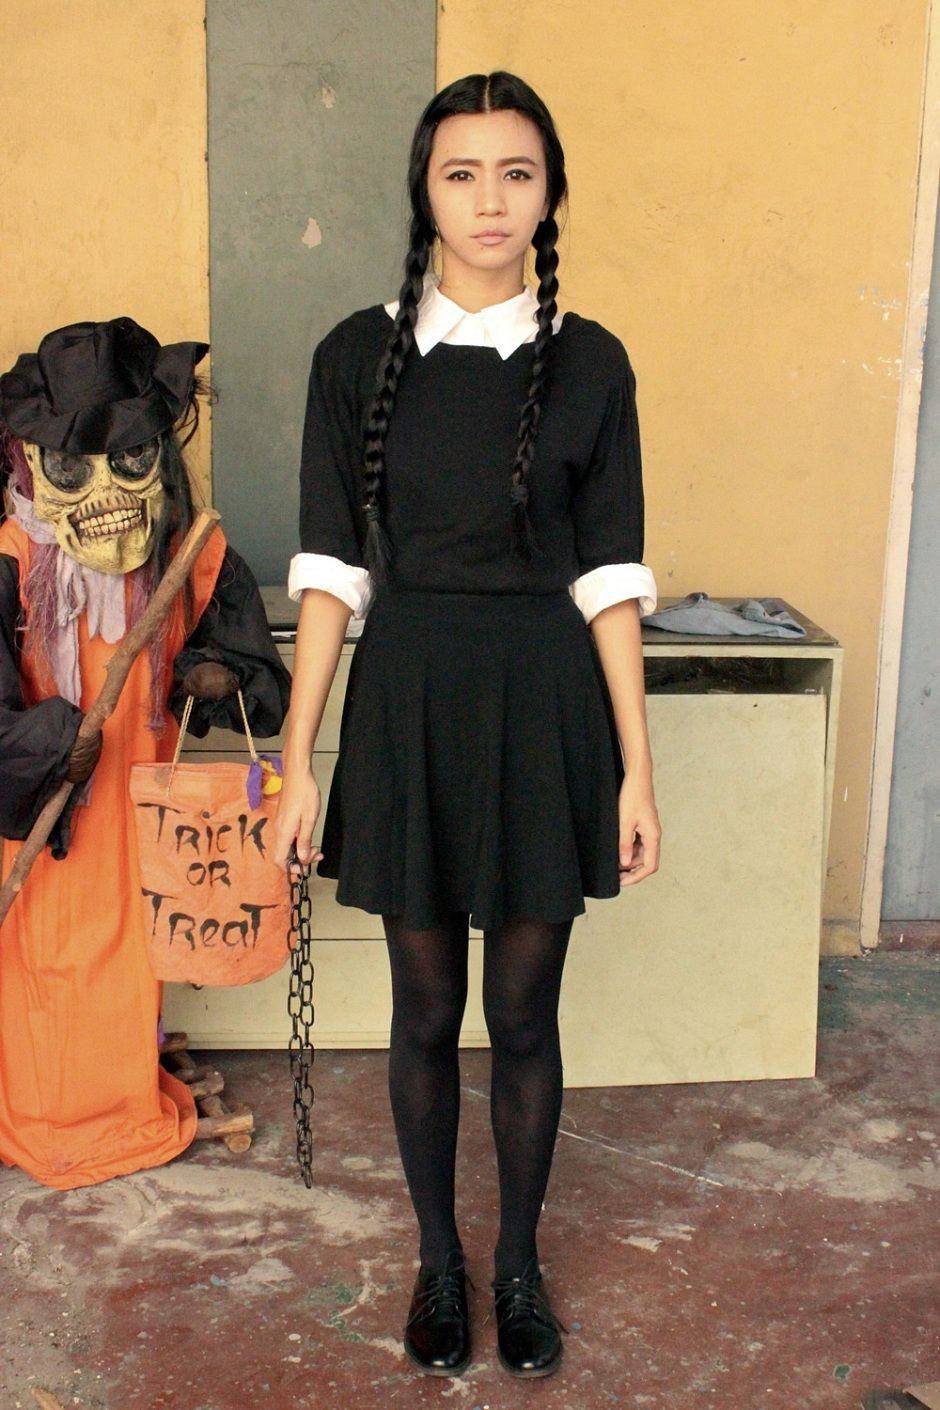 diy wednesday addams halloween costume wednesday adams. Black Bedroom Furniture Sets. Home Design Ideas